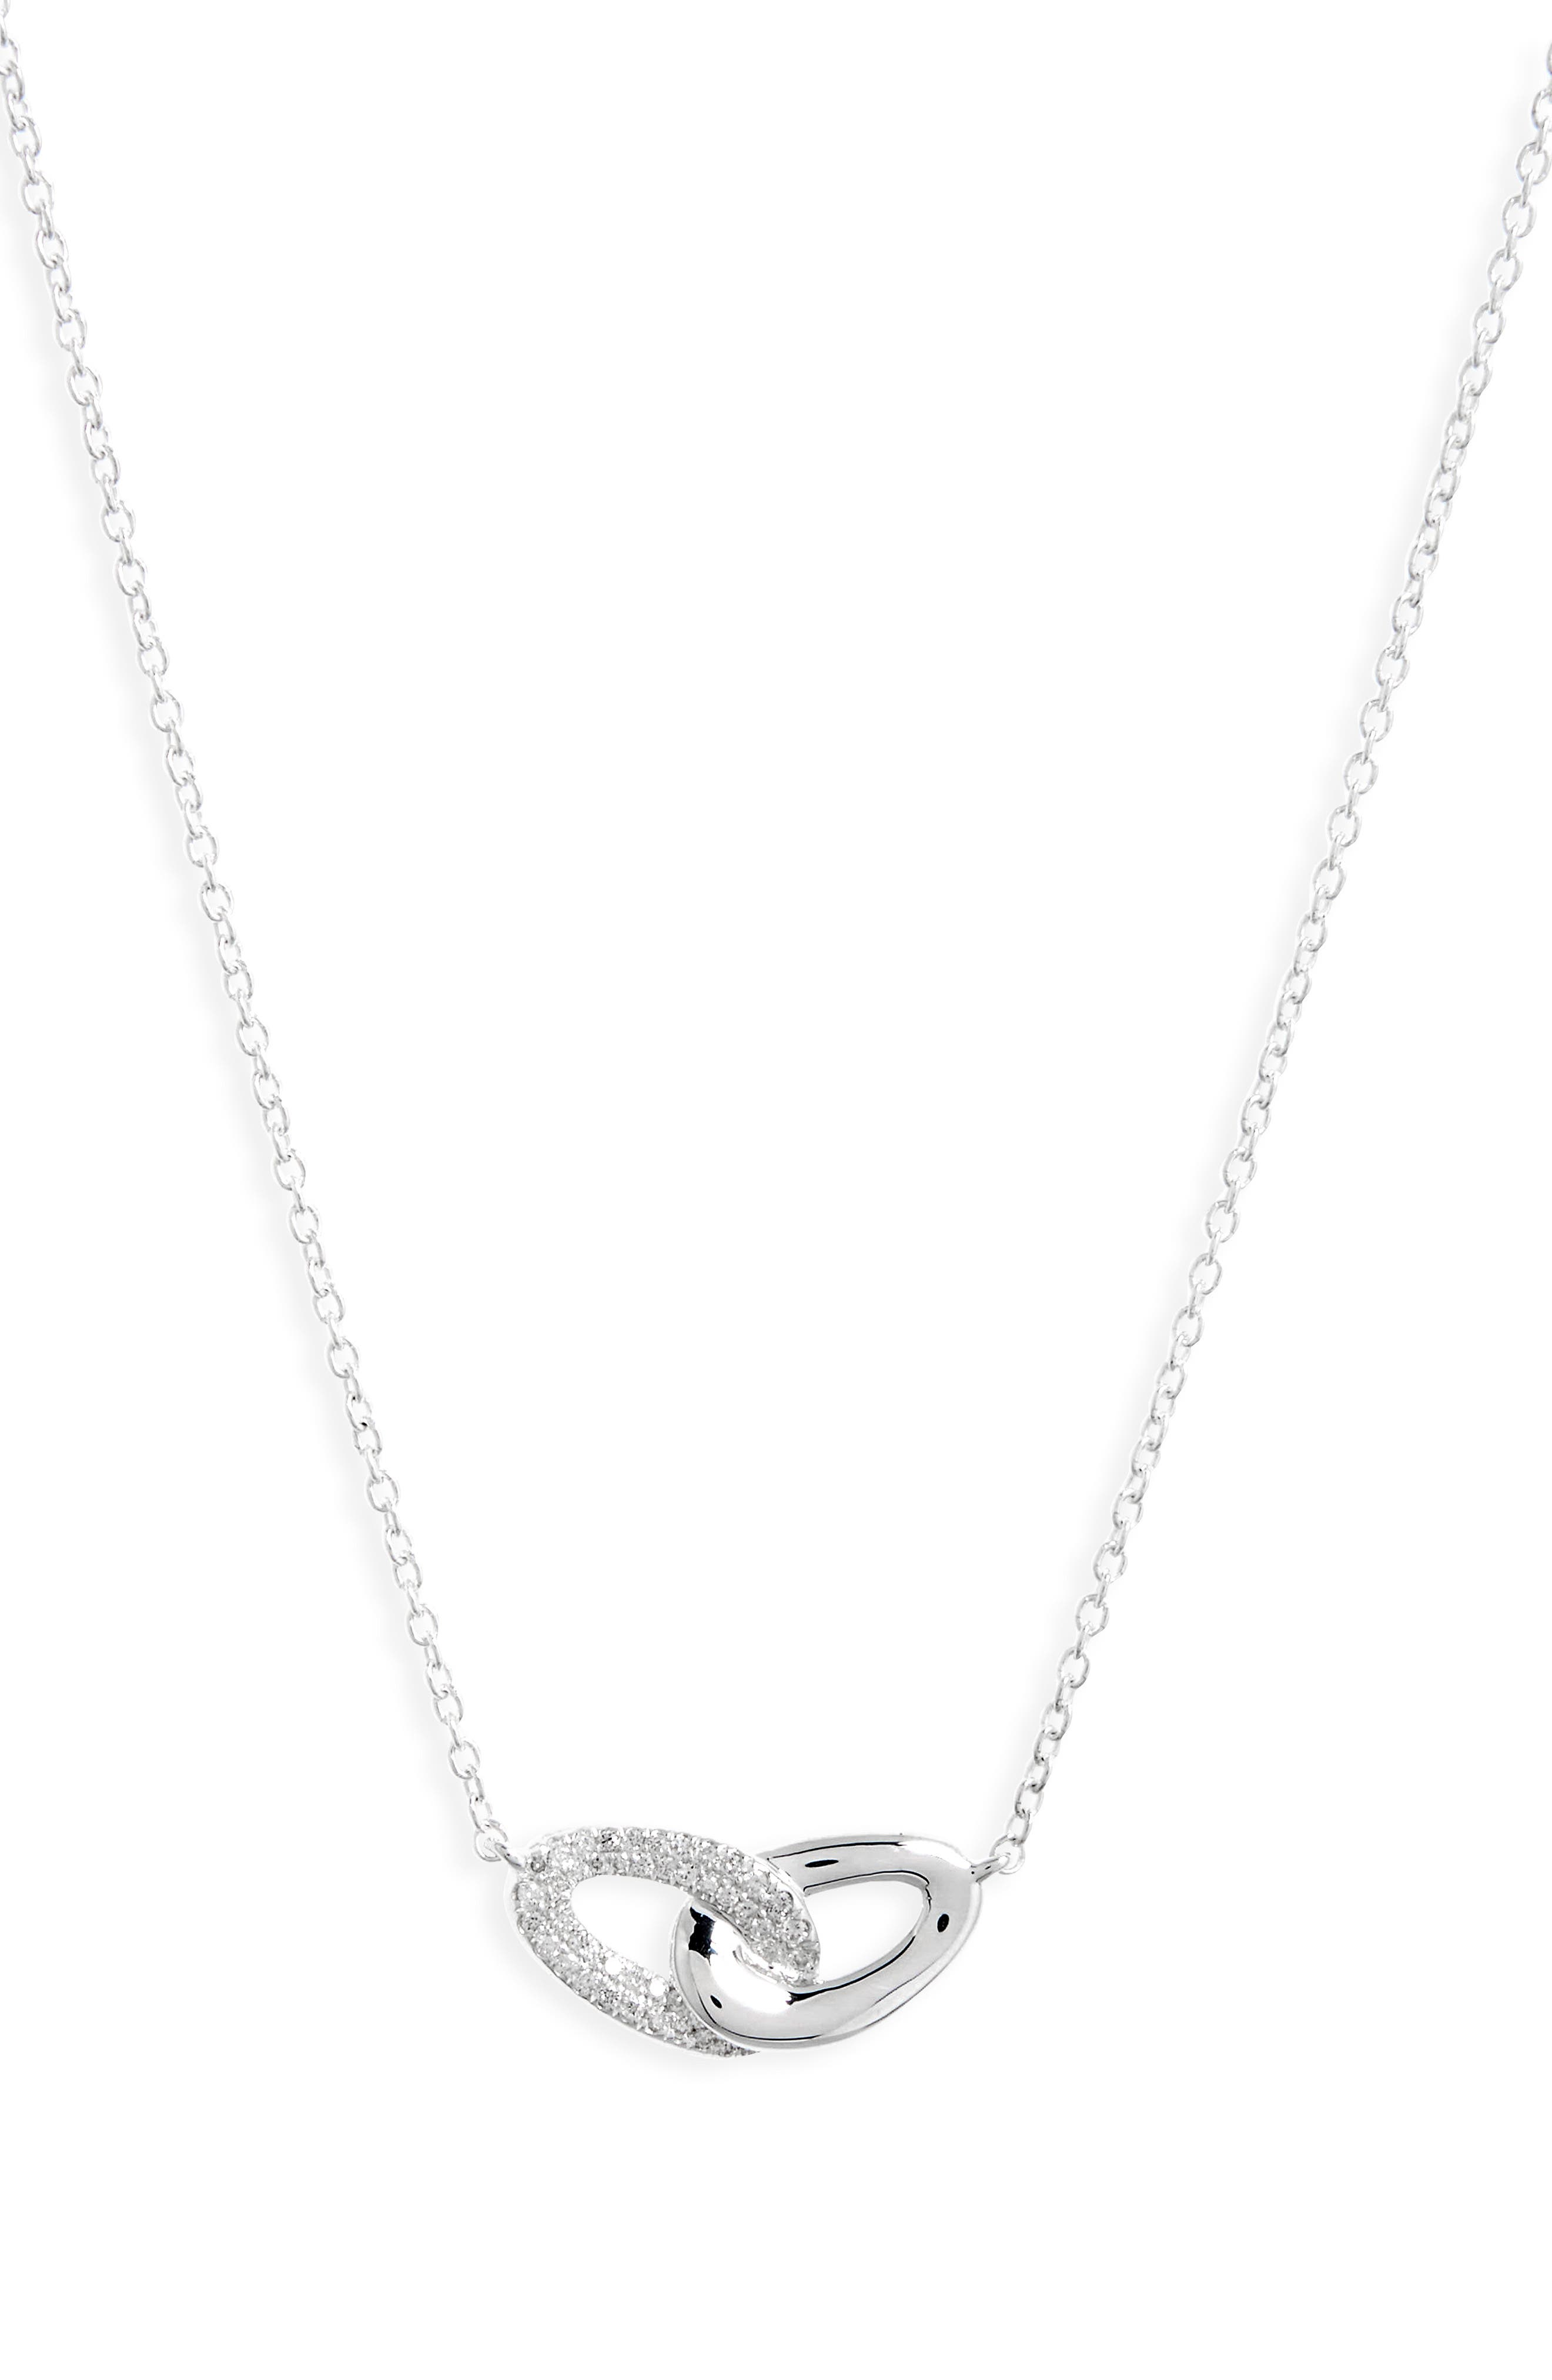 Cherish Interlocking Pendant Necklace,                         Main,                         color, Silver